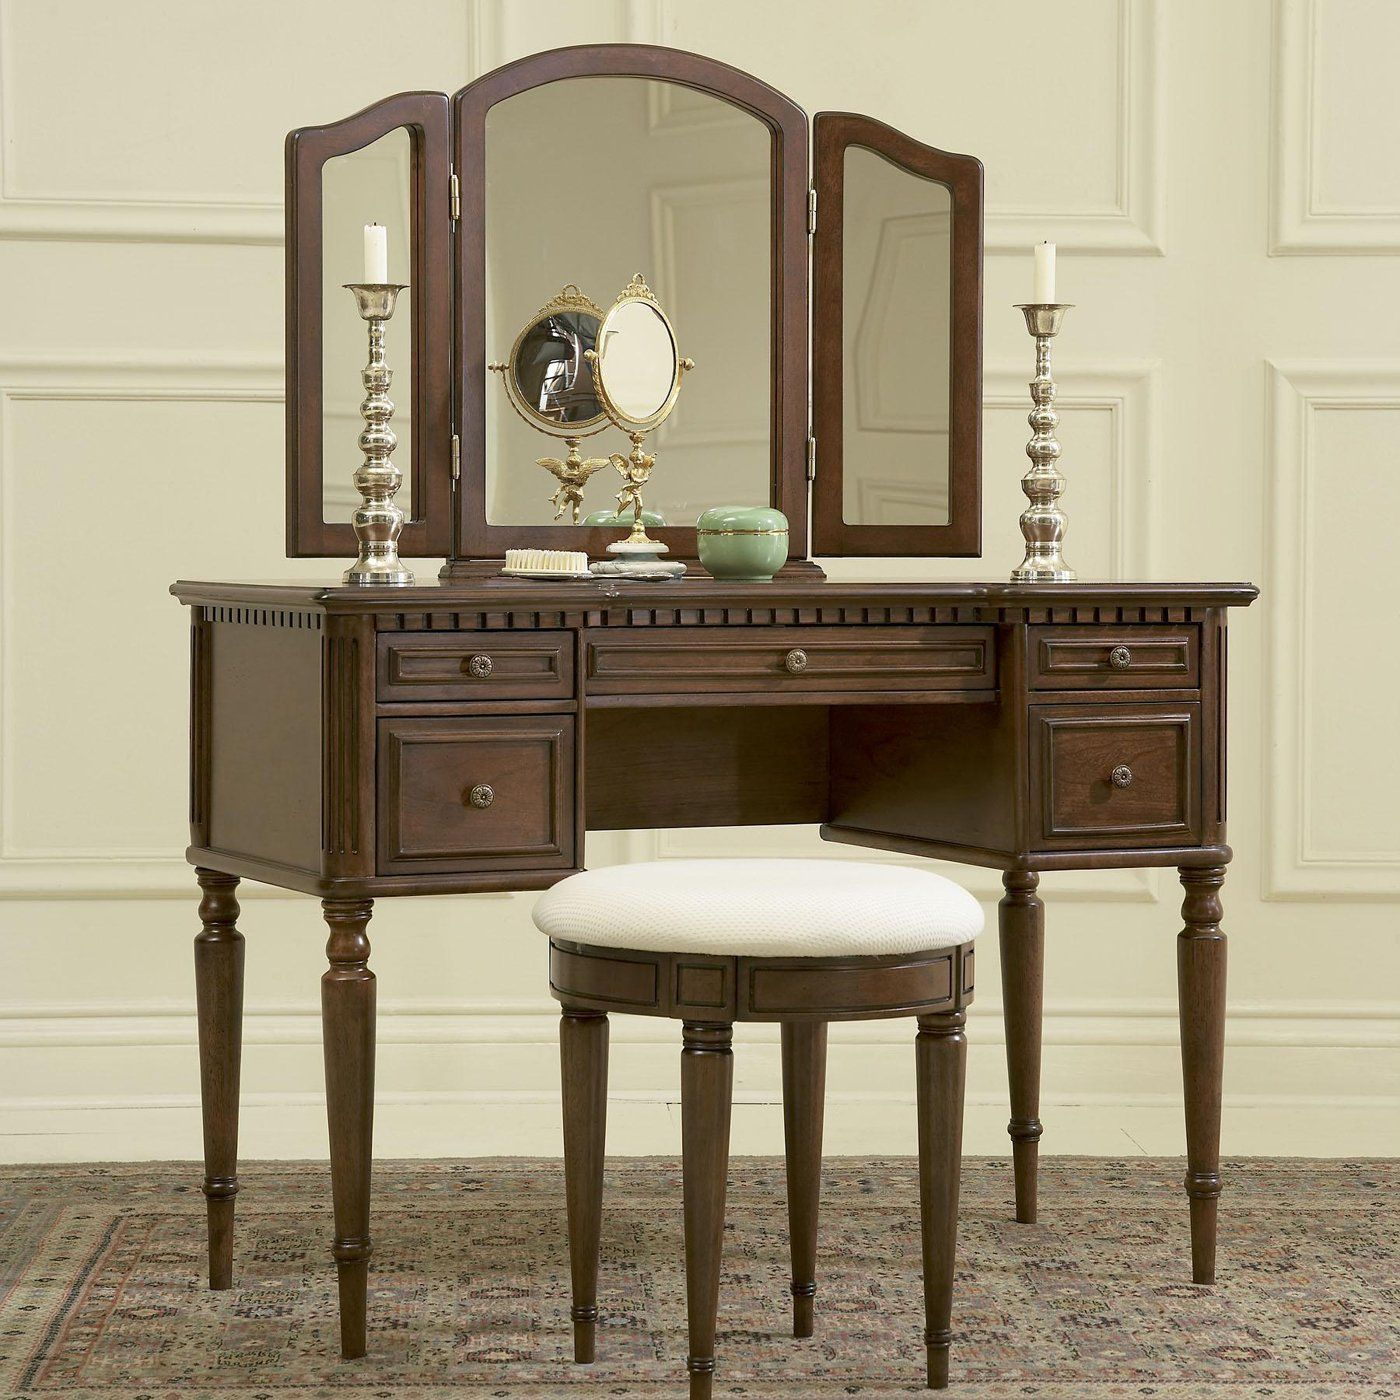 Captivating Powell 429 290 Warm Cherry Mirror Bench Bedroom Vanity